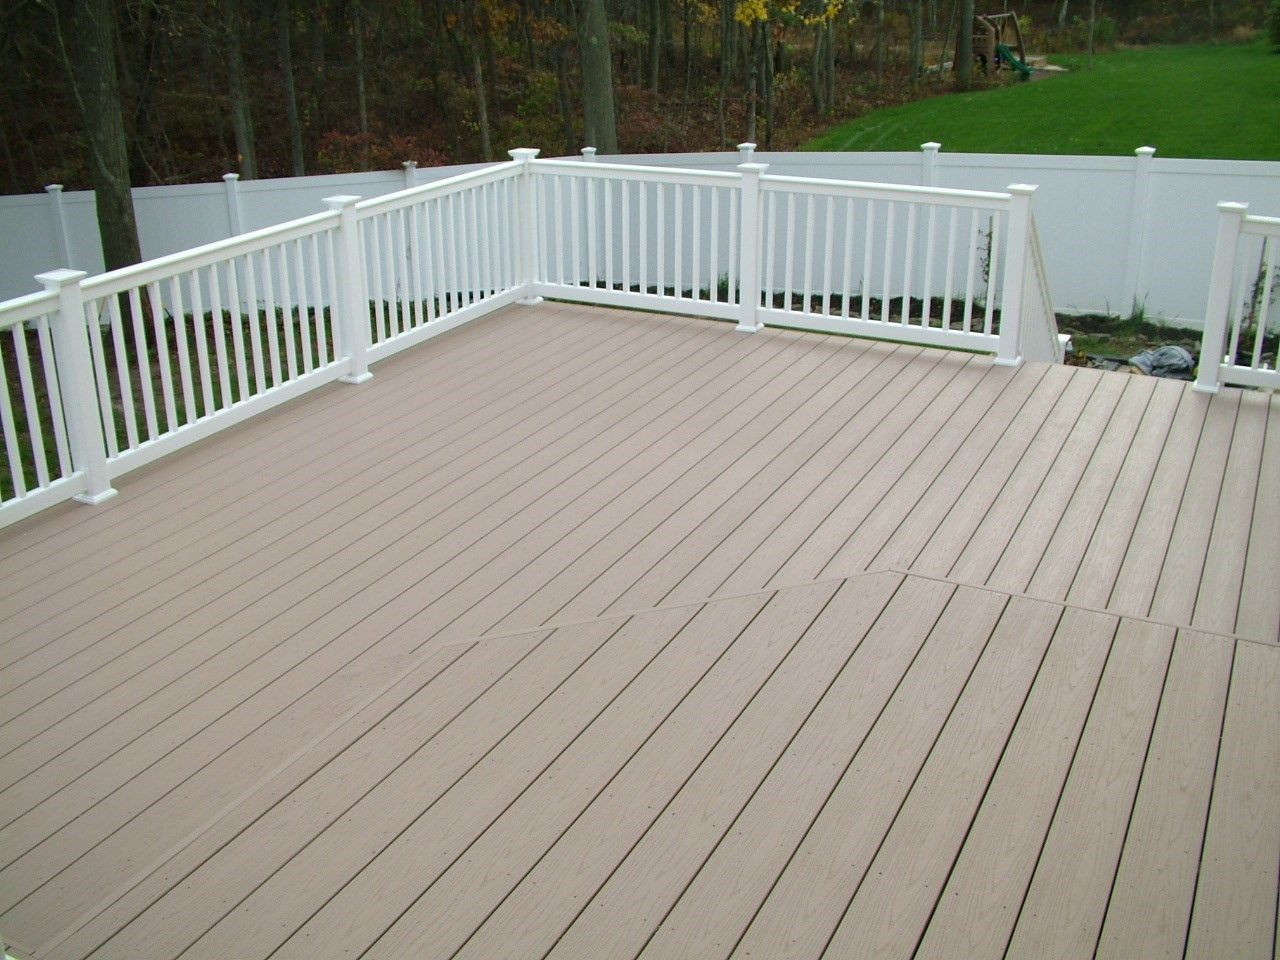 Custom Deck in Marlboro N.J. - Picture 3387